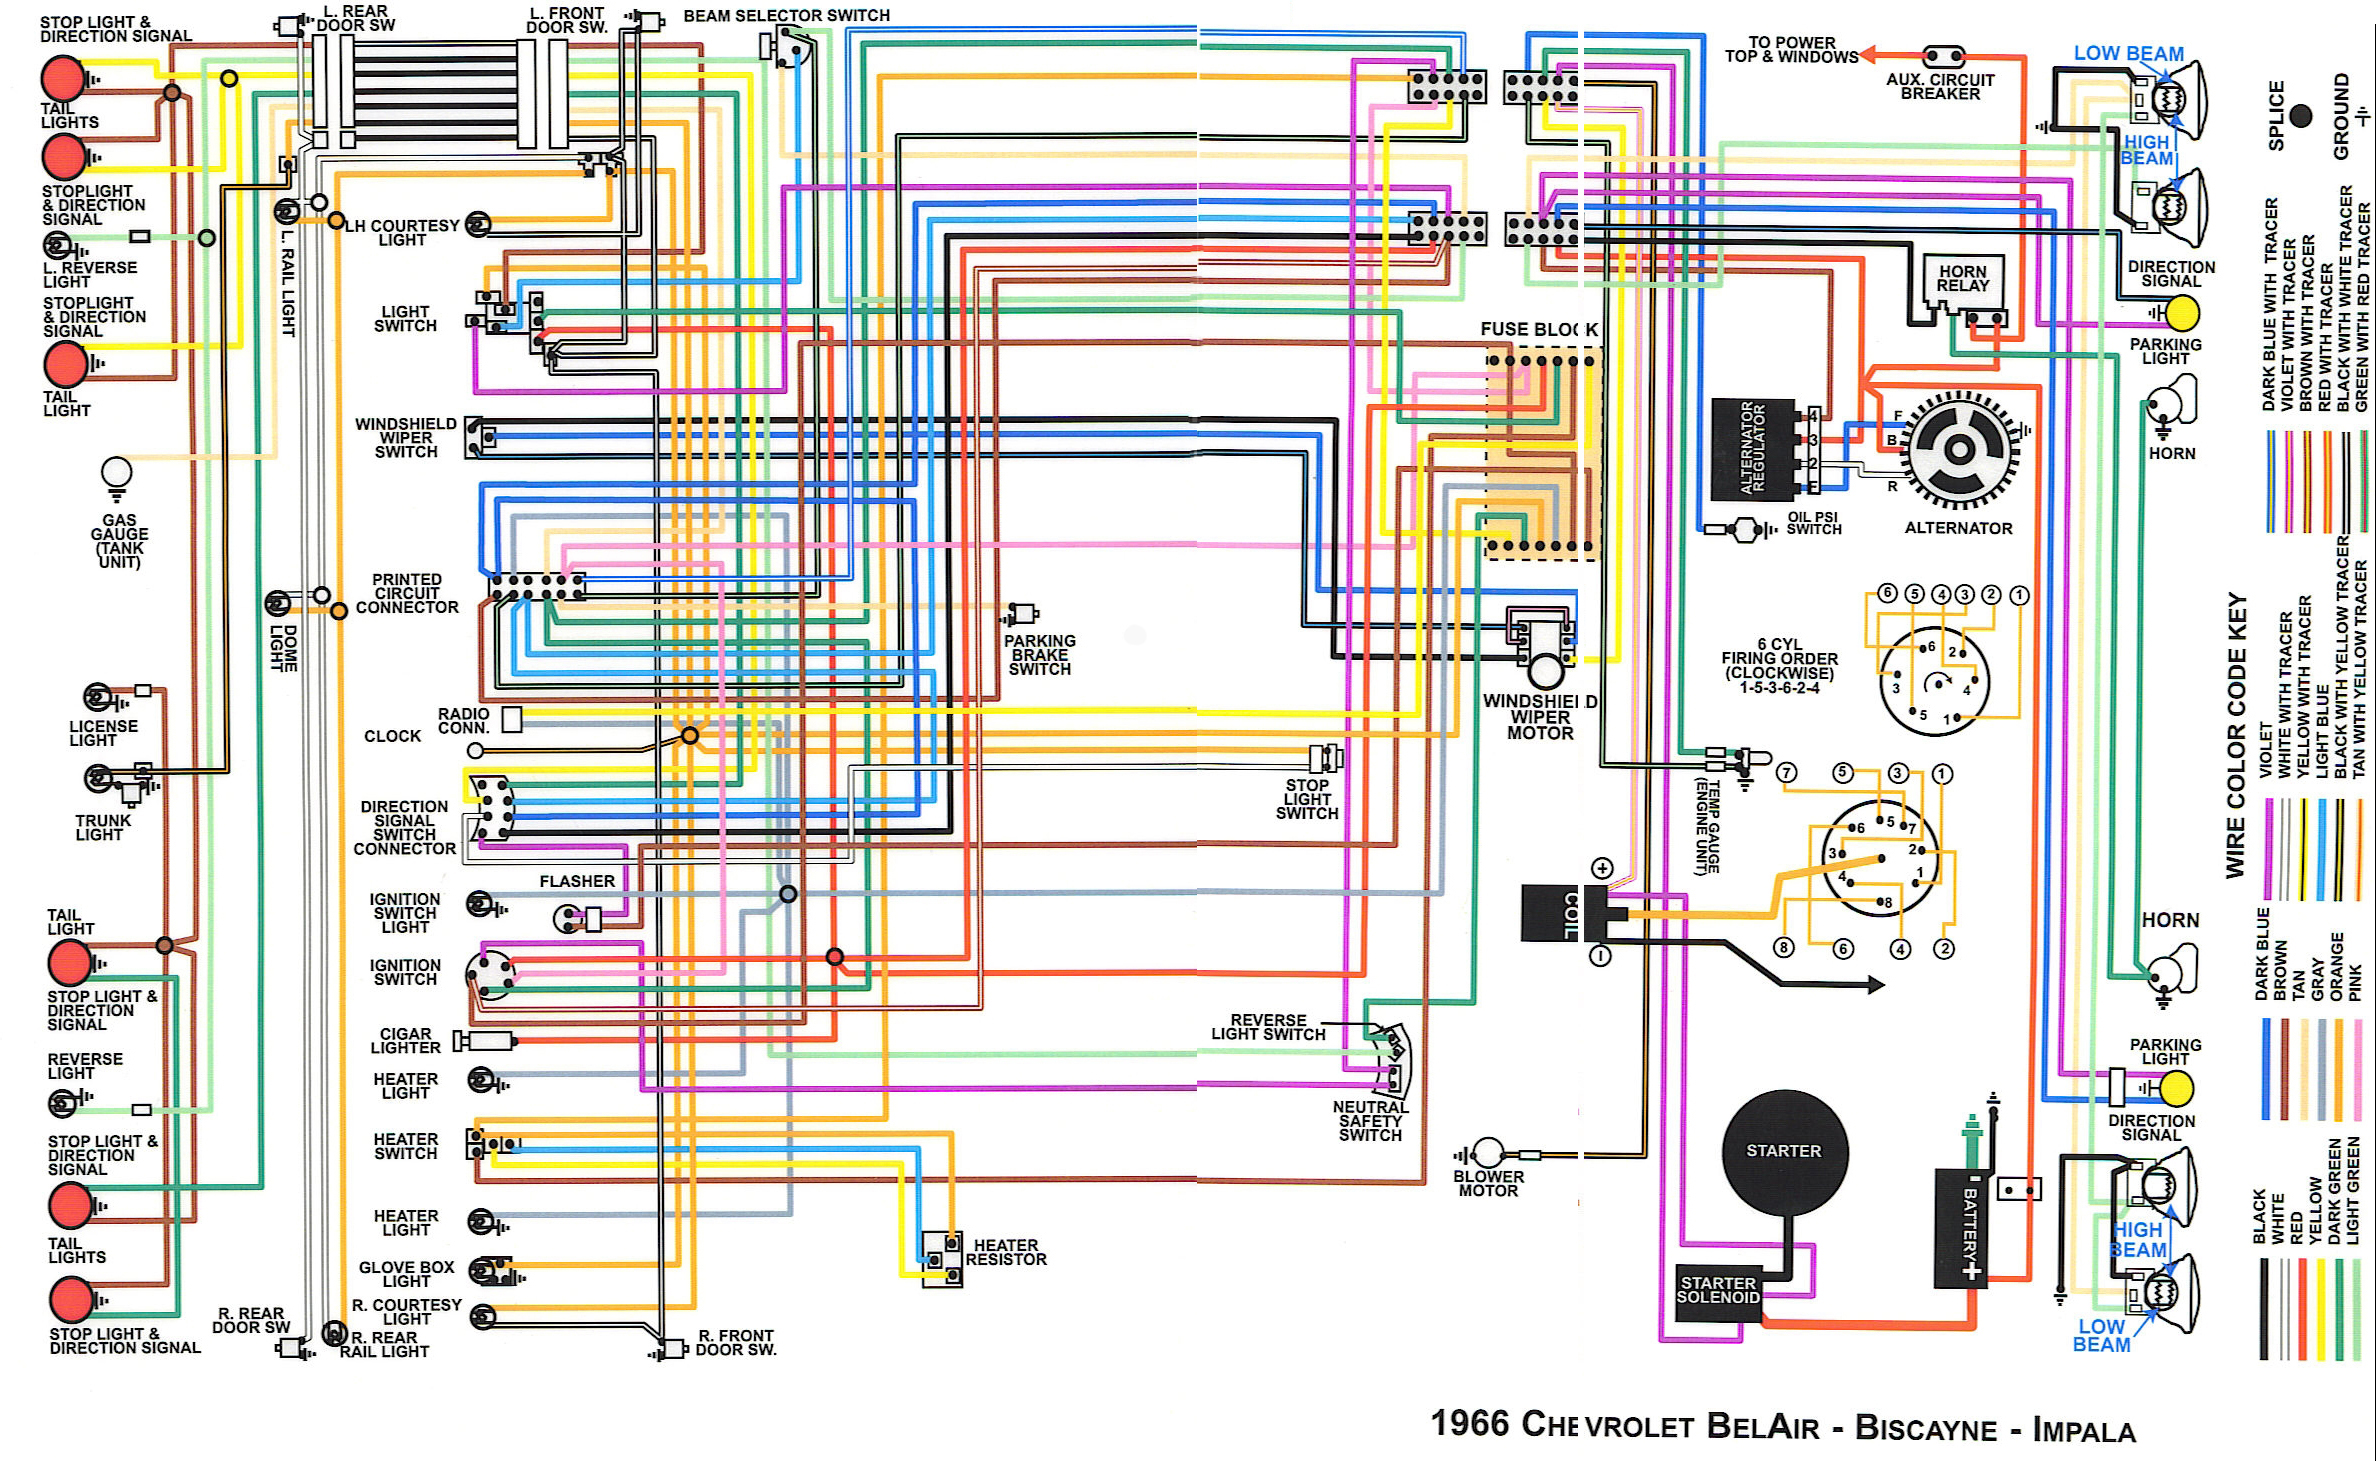 1968 Camaro Engine Diagram - 12.tierarztpraxis-ruffy.de • on 1967 camaro led headlights, 1967 impala gauge wiring diagram, chevrolet wiring diagram, 68 camaro wiring diagram, 1967 camaro console wiring diagram, 1967 camaro headlight wiring diagram, 1968 camaro wiring diagram, 81 camaro wiring diagram, 67 camaro wiring diagram, 1981 camaro wiring diagram, 1994 camaro wiring diagram, 1967 camaro wiring diagram online, 1967 camaro distributor wiring diagram, 1967 camaro horn wiring diagram, 1967 camaro fuel wiring diagram, camaro radio wiring diagram, 1967 camaro painless wiring diagram, 69 camaro wiring diagram, 1967 camaro speakers, 1967 camaro alternator wiring diagram,